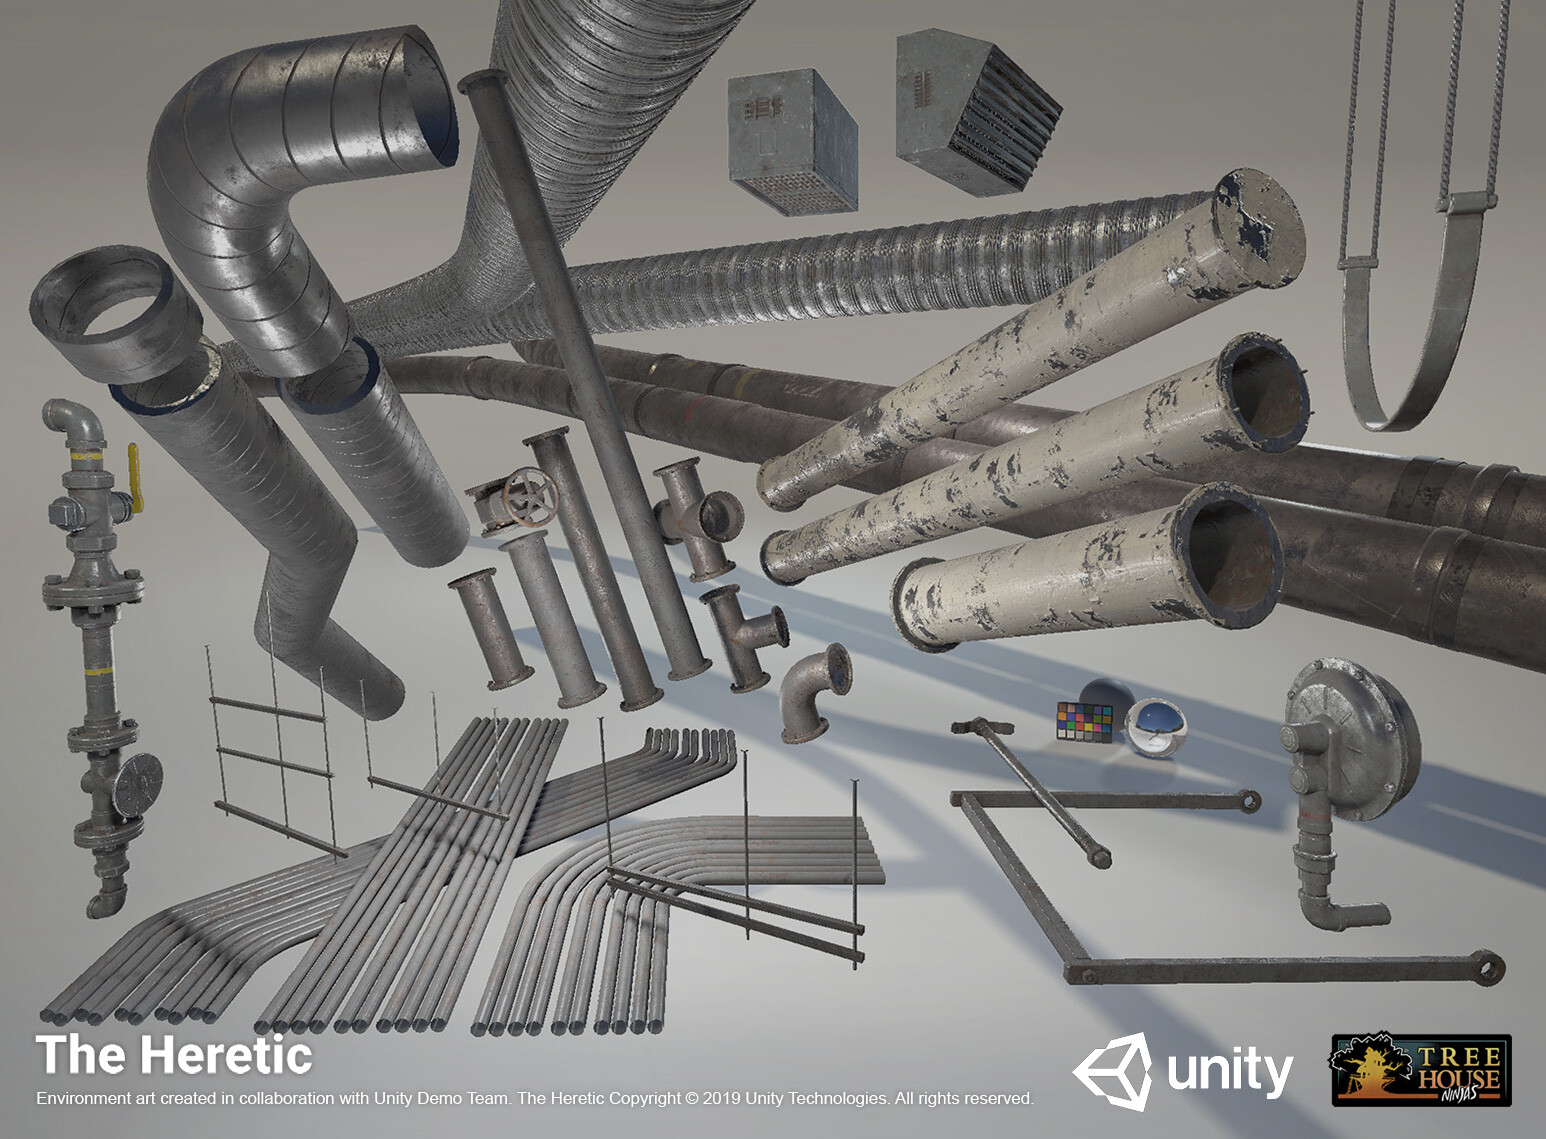 ArtStation - The Heretic - Basement Exquisite Asset